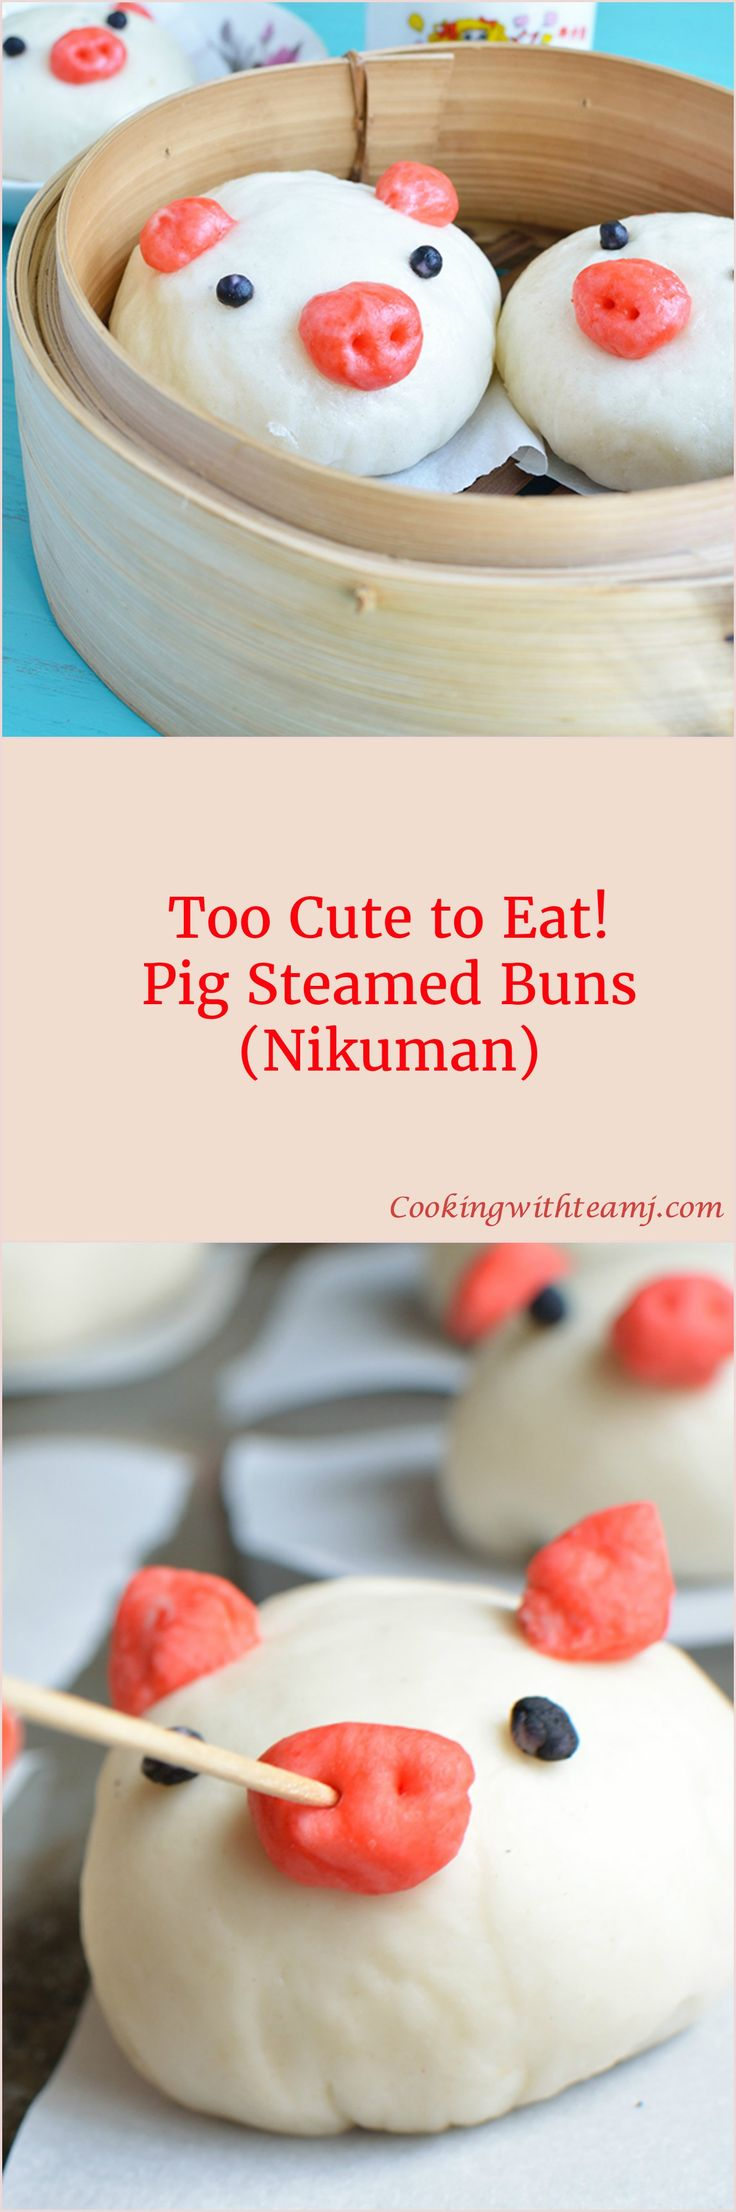 These little piggies went to the market and never came back :(  These guys are too cute to eat! A classic twist on the Pork Steamed Buns (Nikuman). Instructions on the blog.